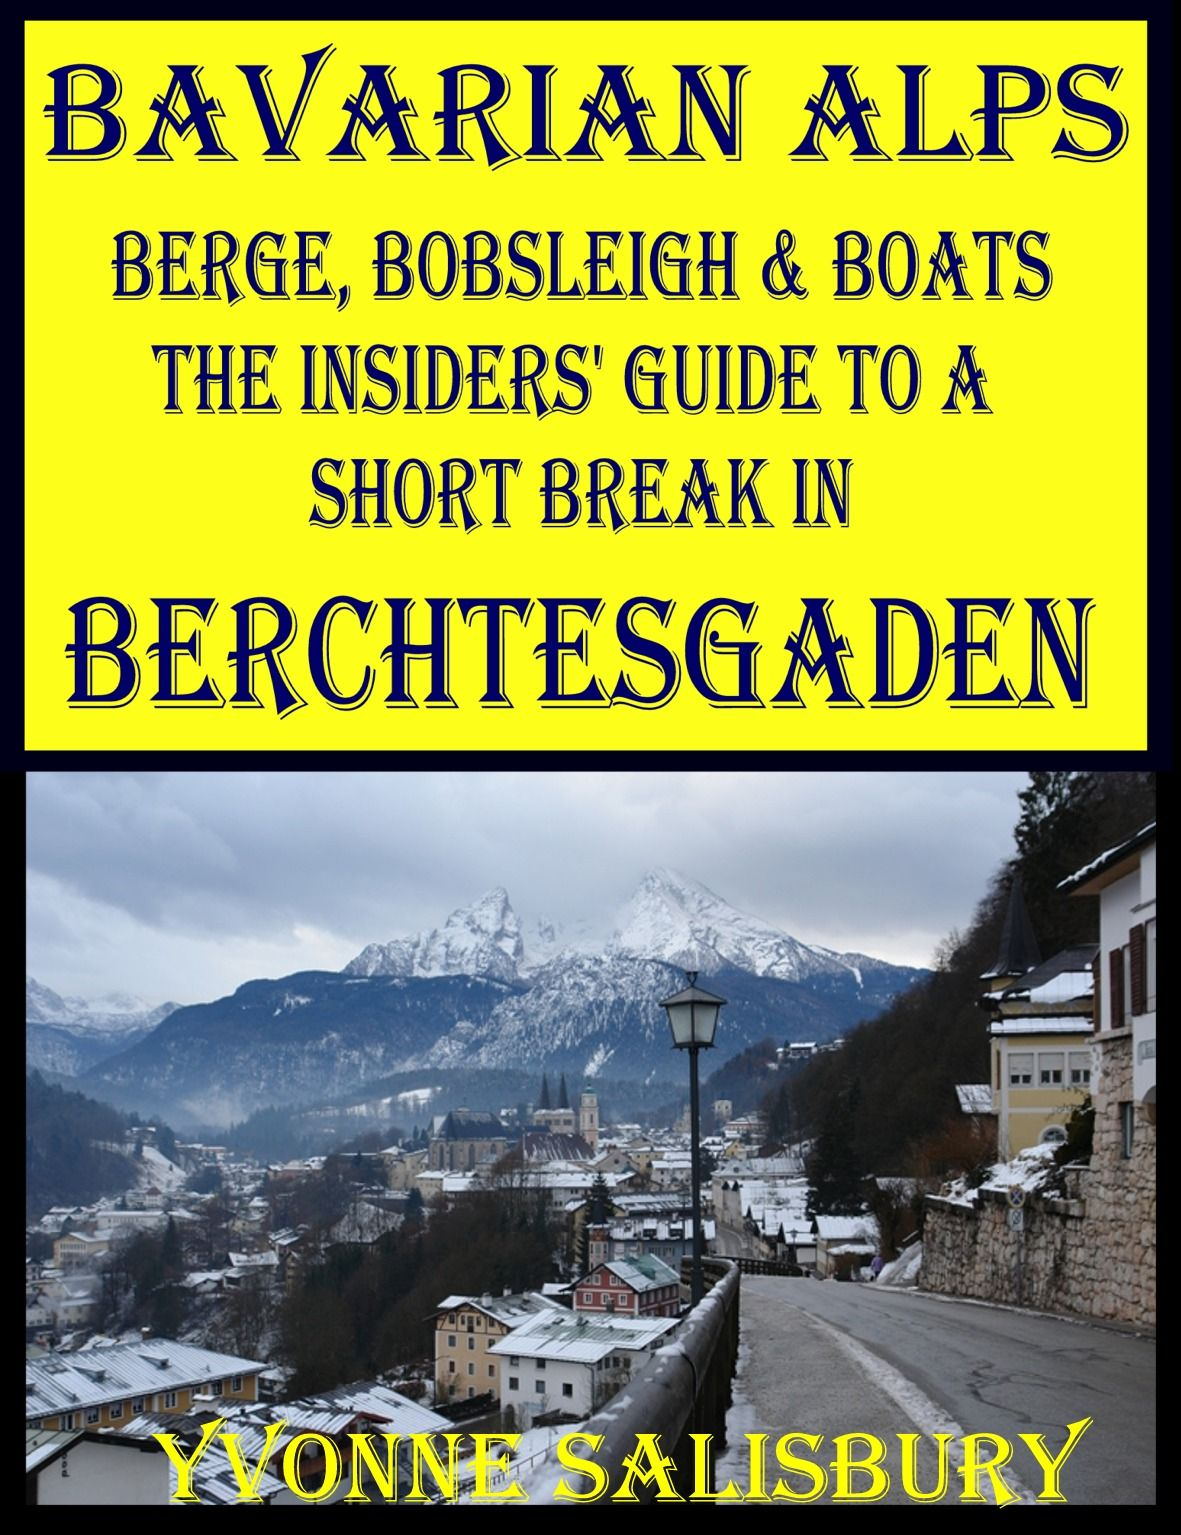 Berge, Bobsleigh and Boats. the Insiders guide to a holiday in Berchtesgaden with details of what is available all year round; winter sports, summer activities, food and drink, day trips including Salzburg  Available from Amazon Kindle